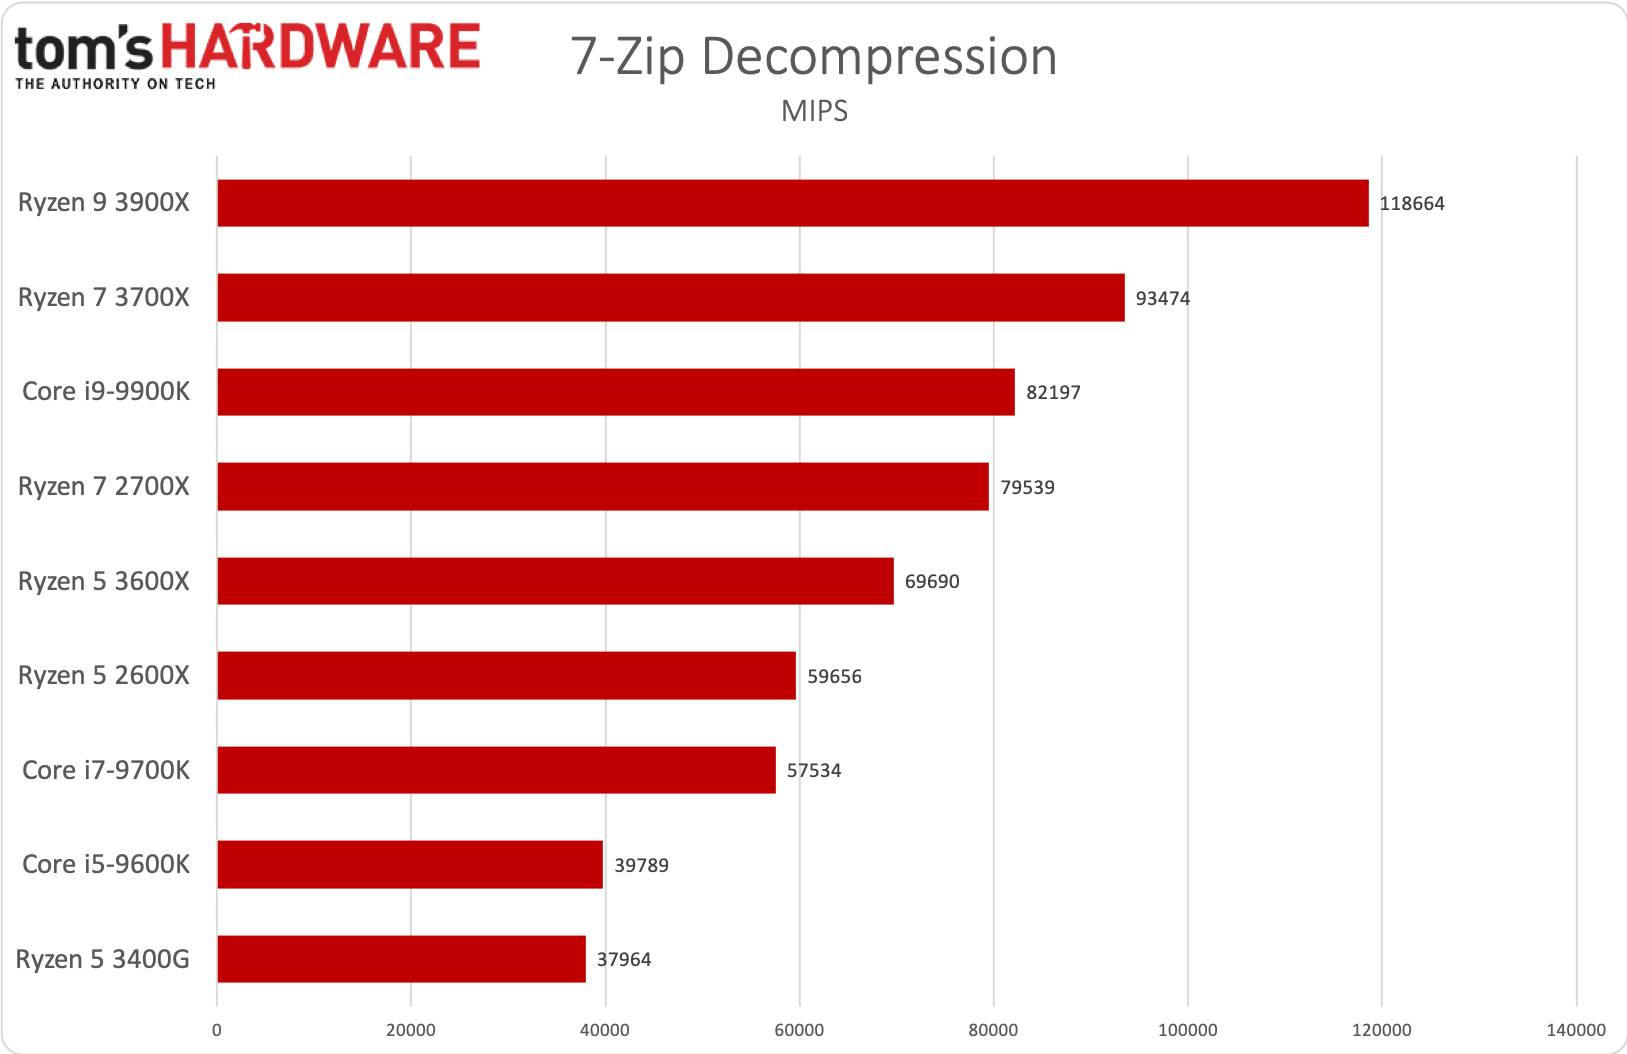 Ryzen 5 - 7zip decompression